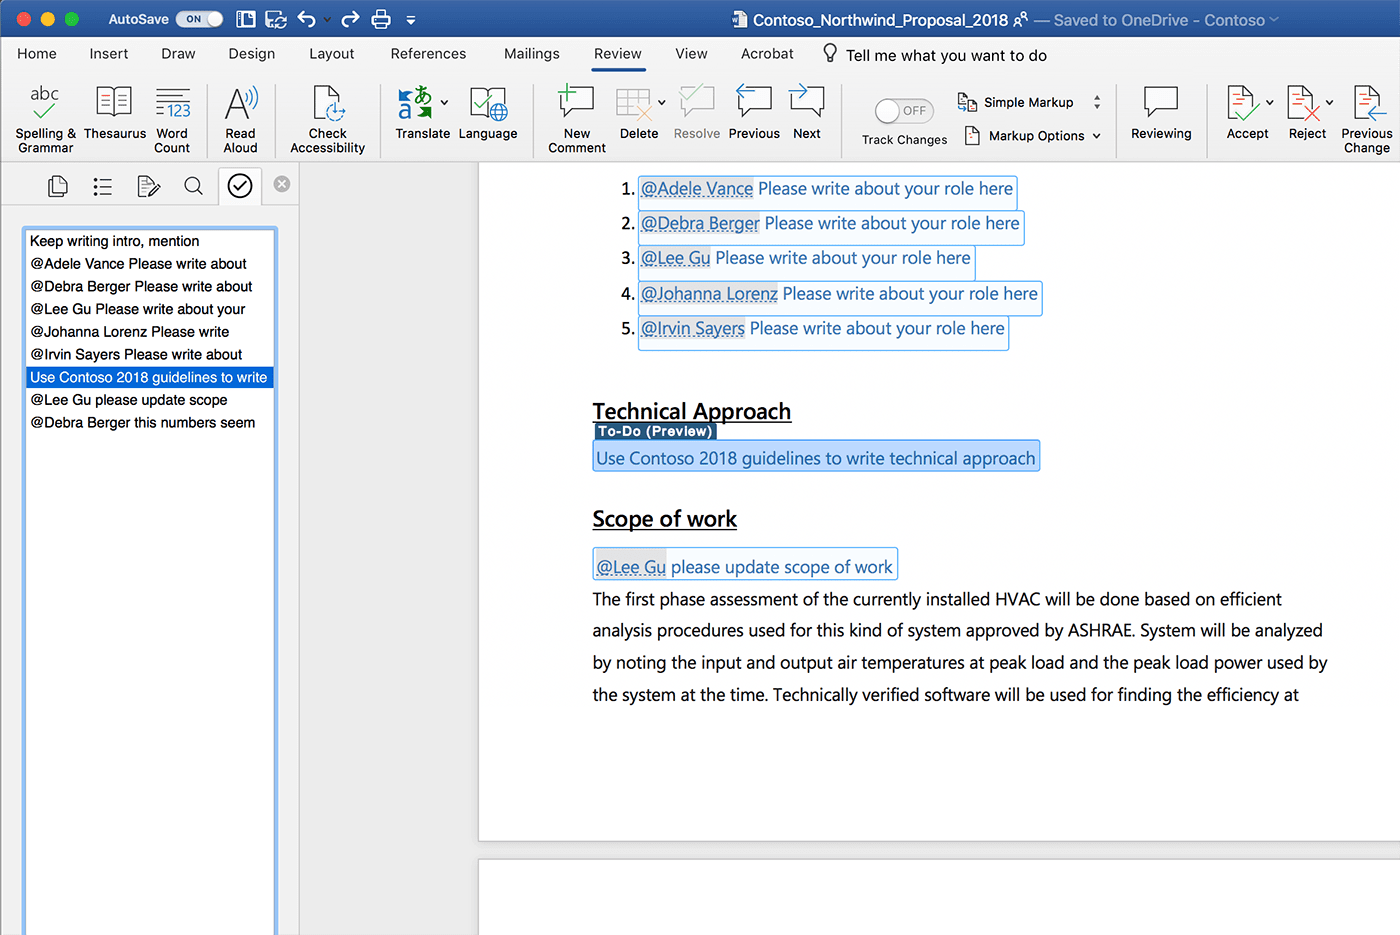 microsoft word will automatically create to do lists for you